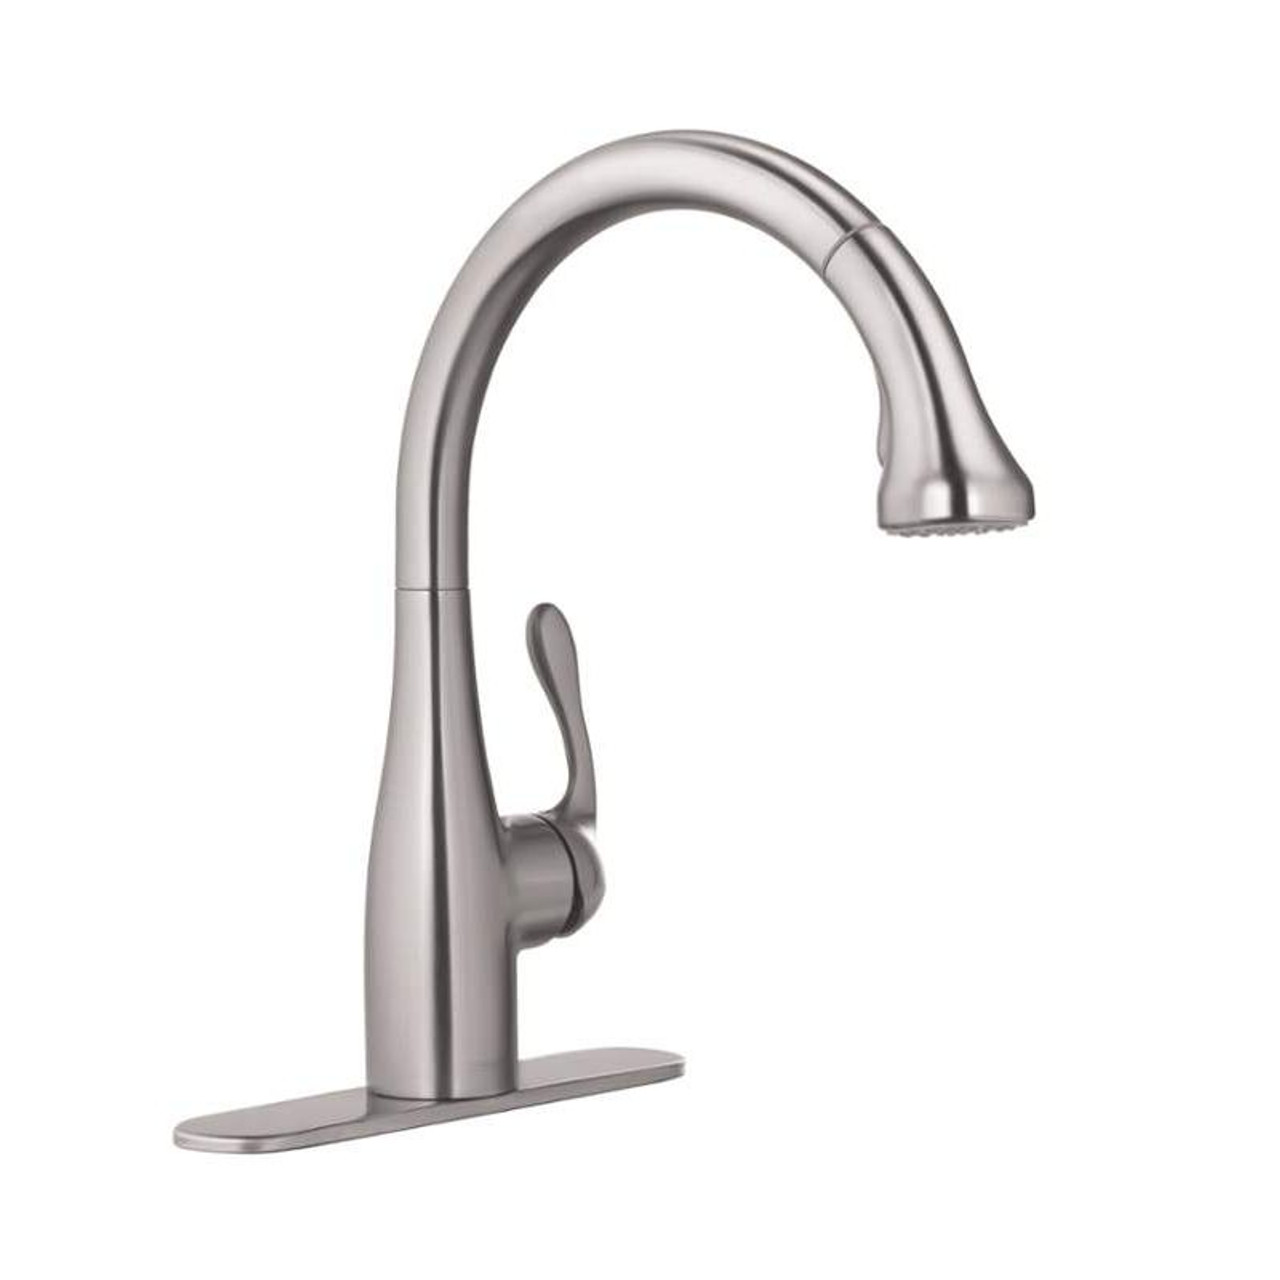 Hansgrohe Allegro E Pull Down Kitchen Faucet With High Arc Spout Magnetic Docking And Locking Spray Diverter In Steel Optik 04066860 Online Bath1 Com